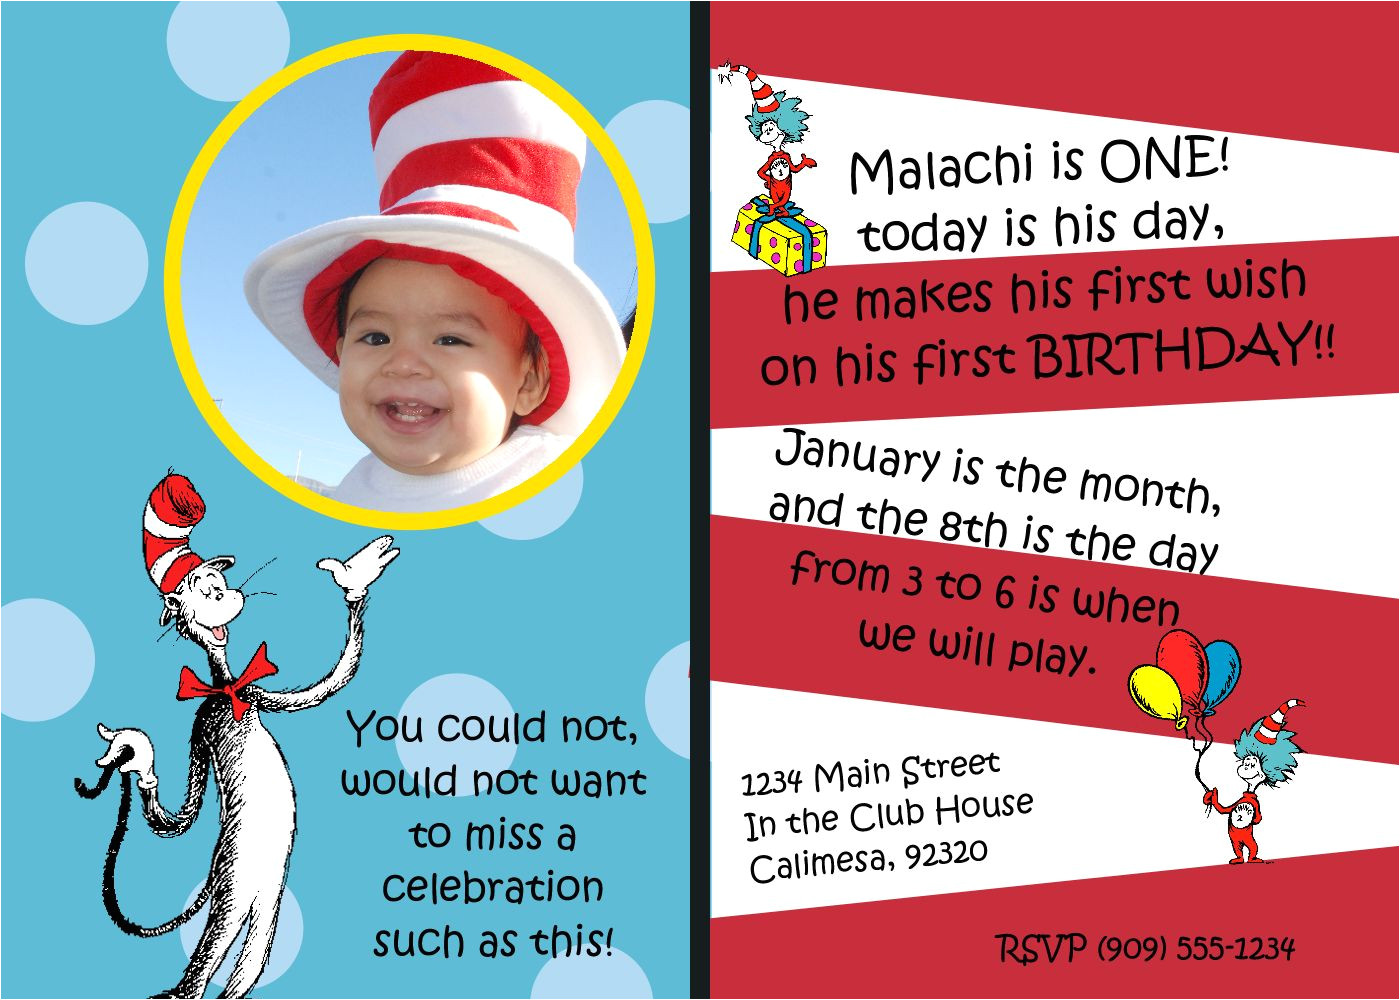 birthday invitation maker for your party